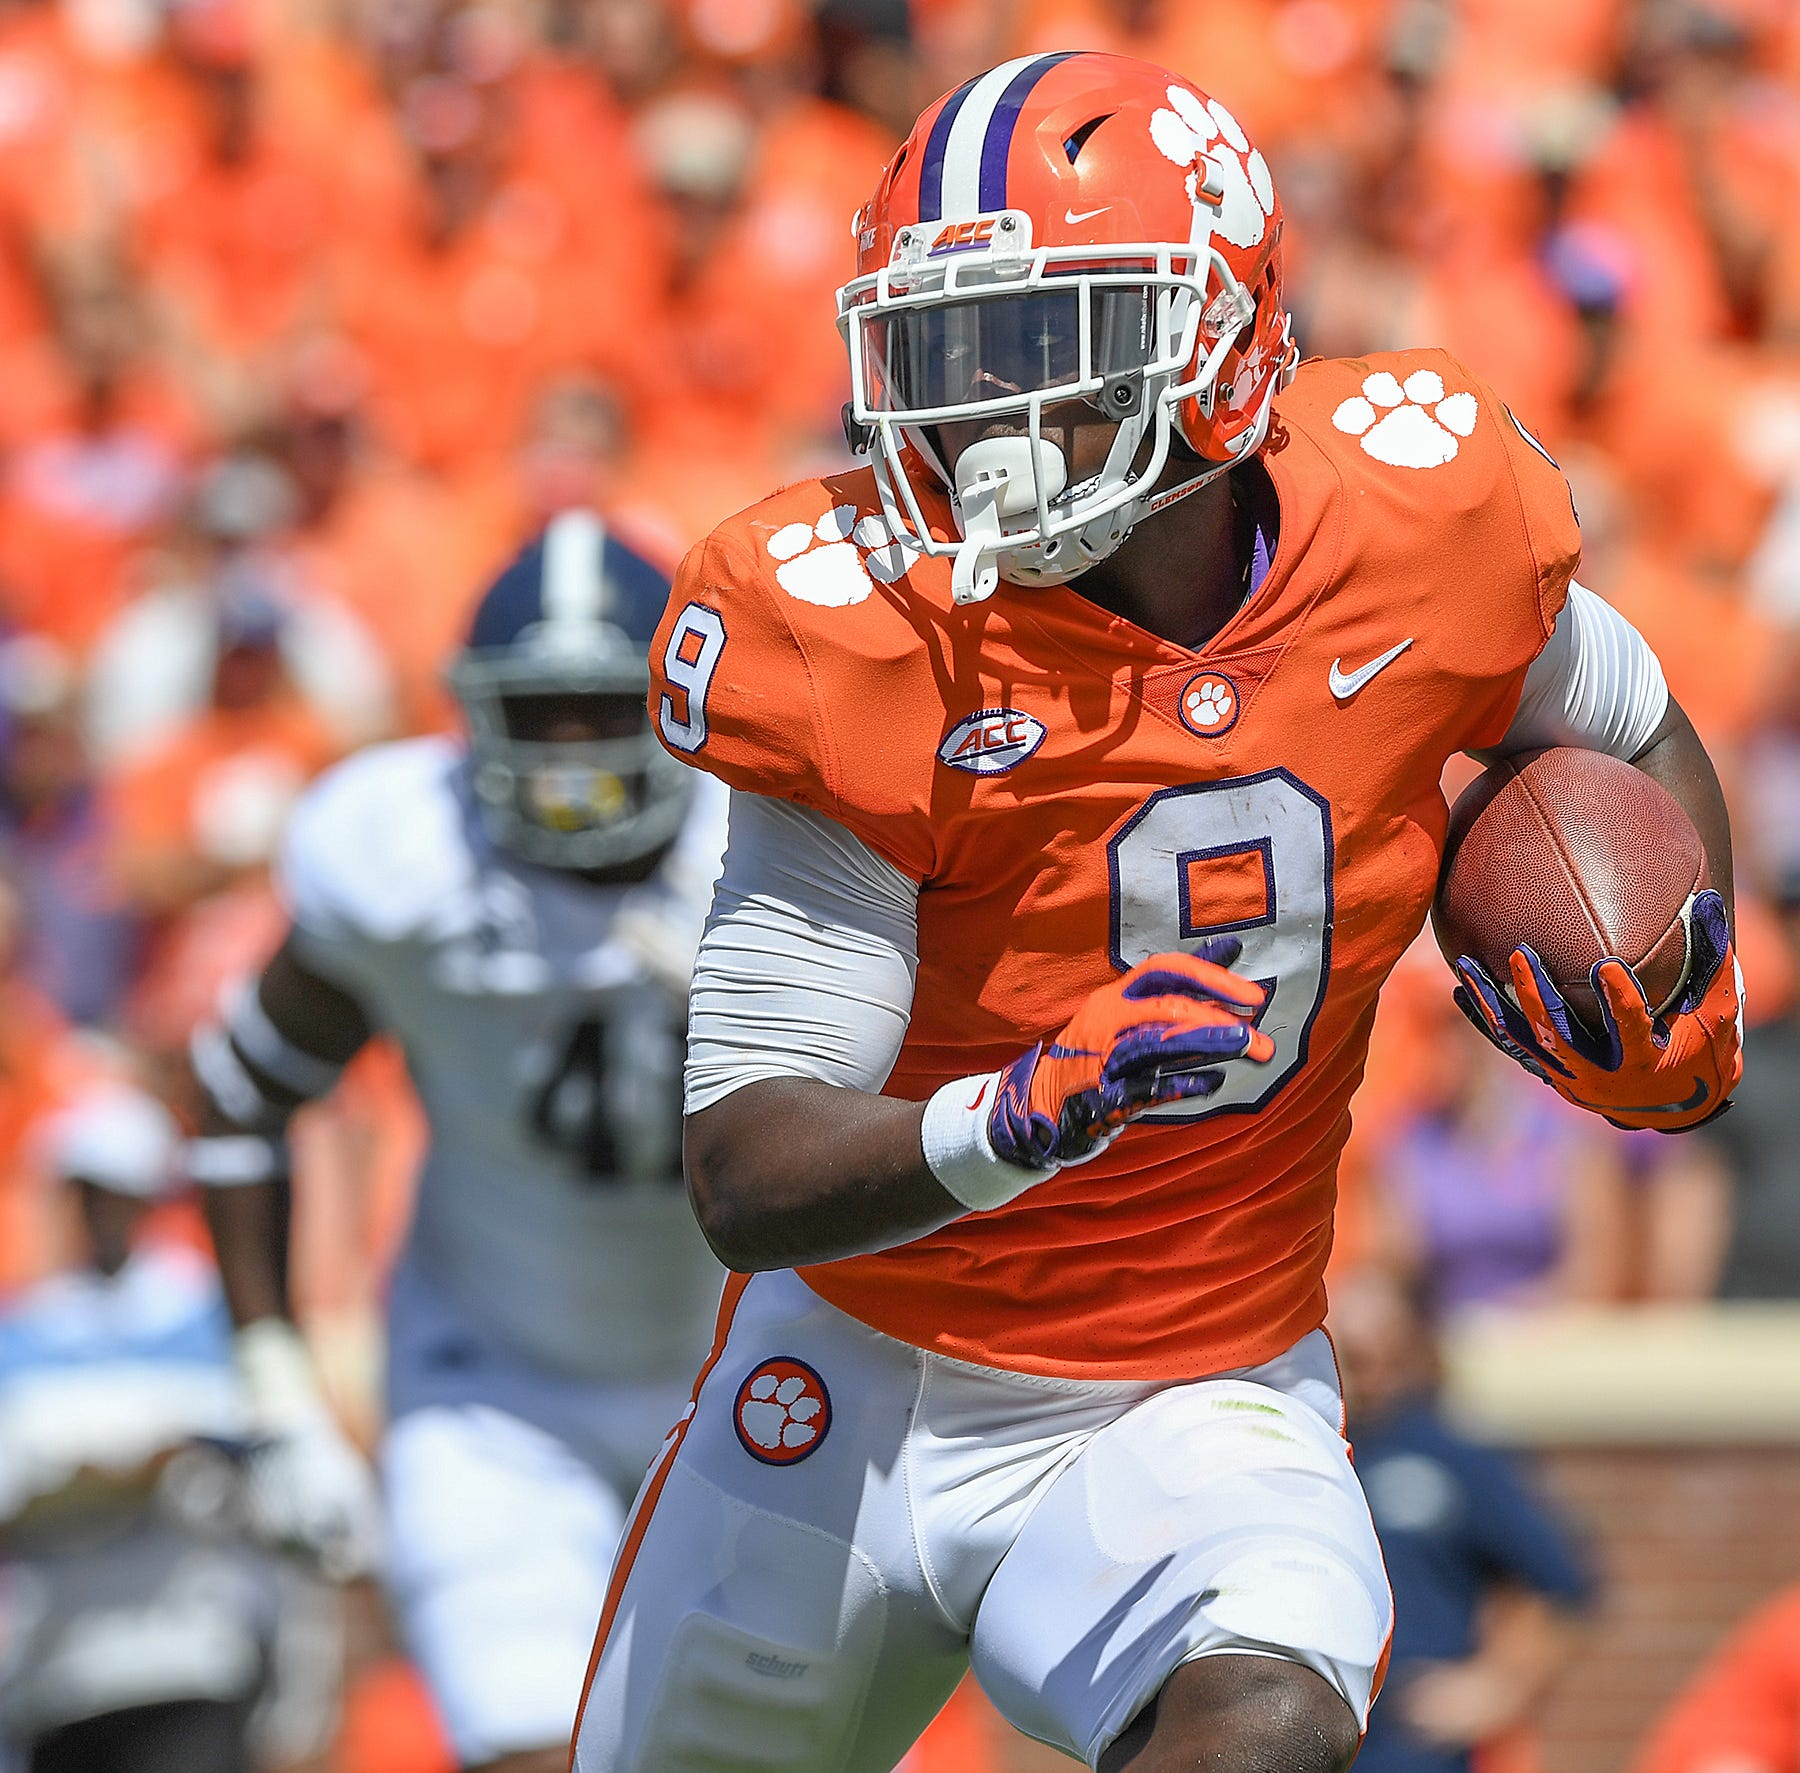 Clemson wanted to get its ground game going; Travis Etienne showed why vs Georgia Southern